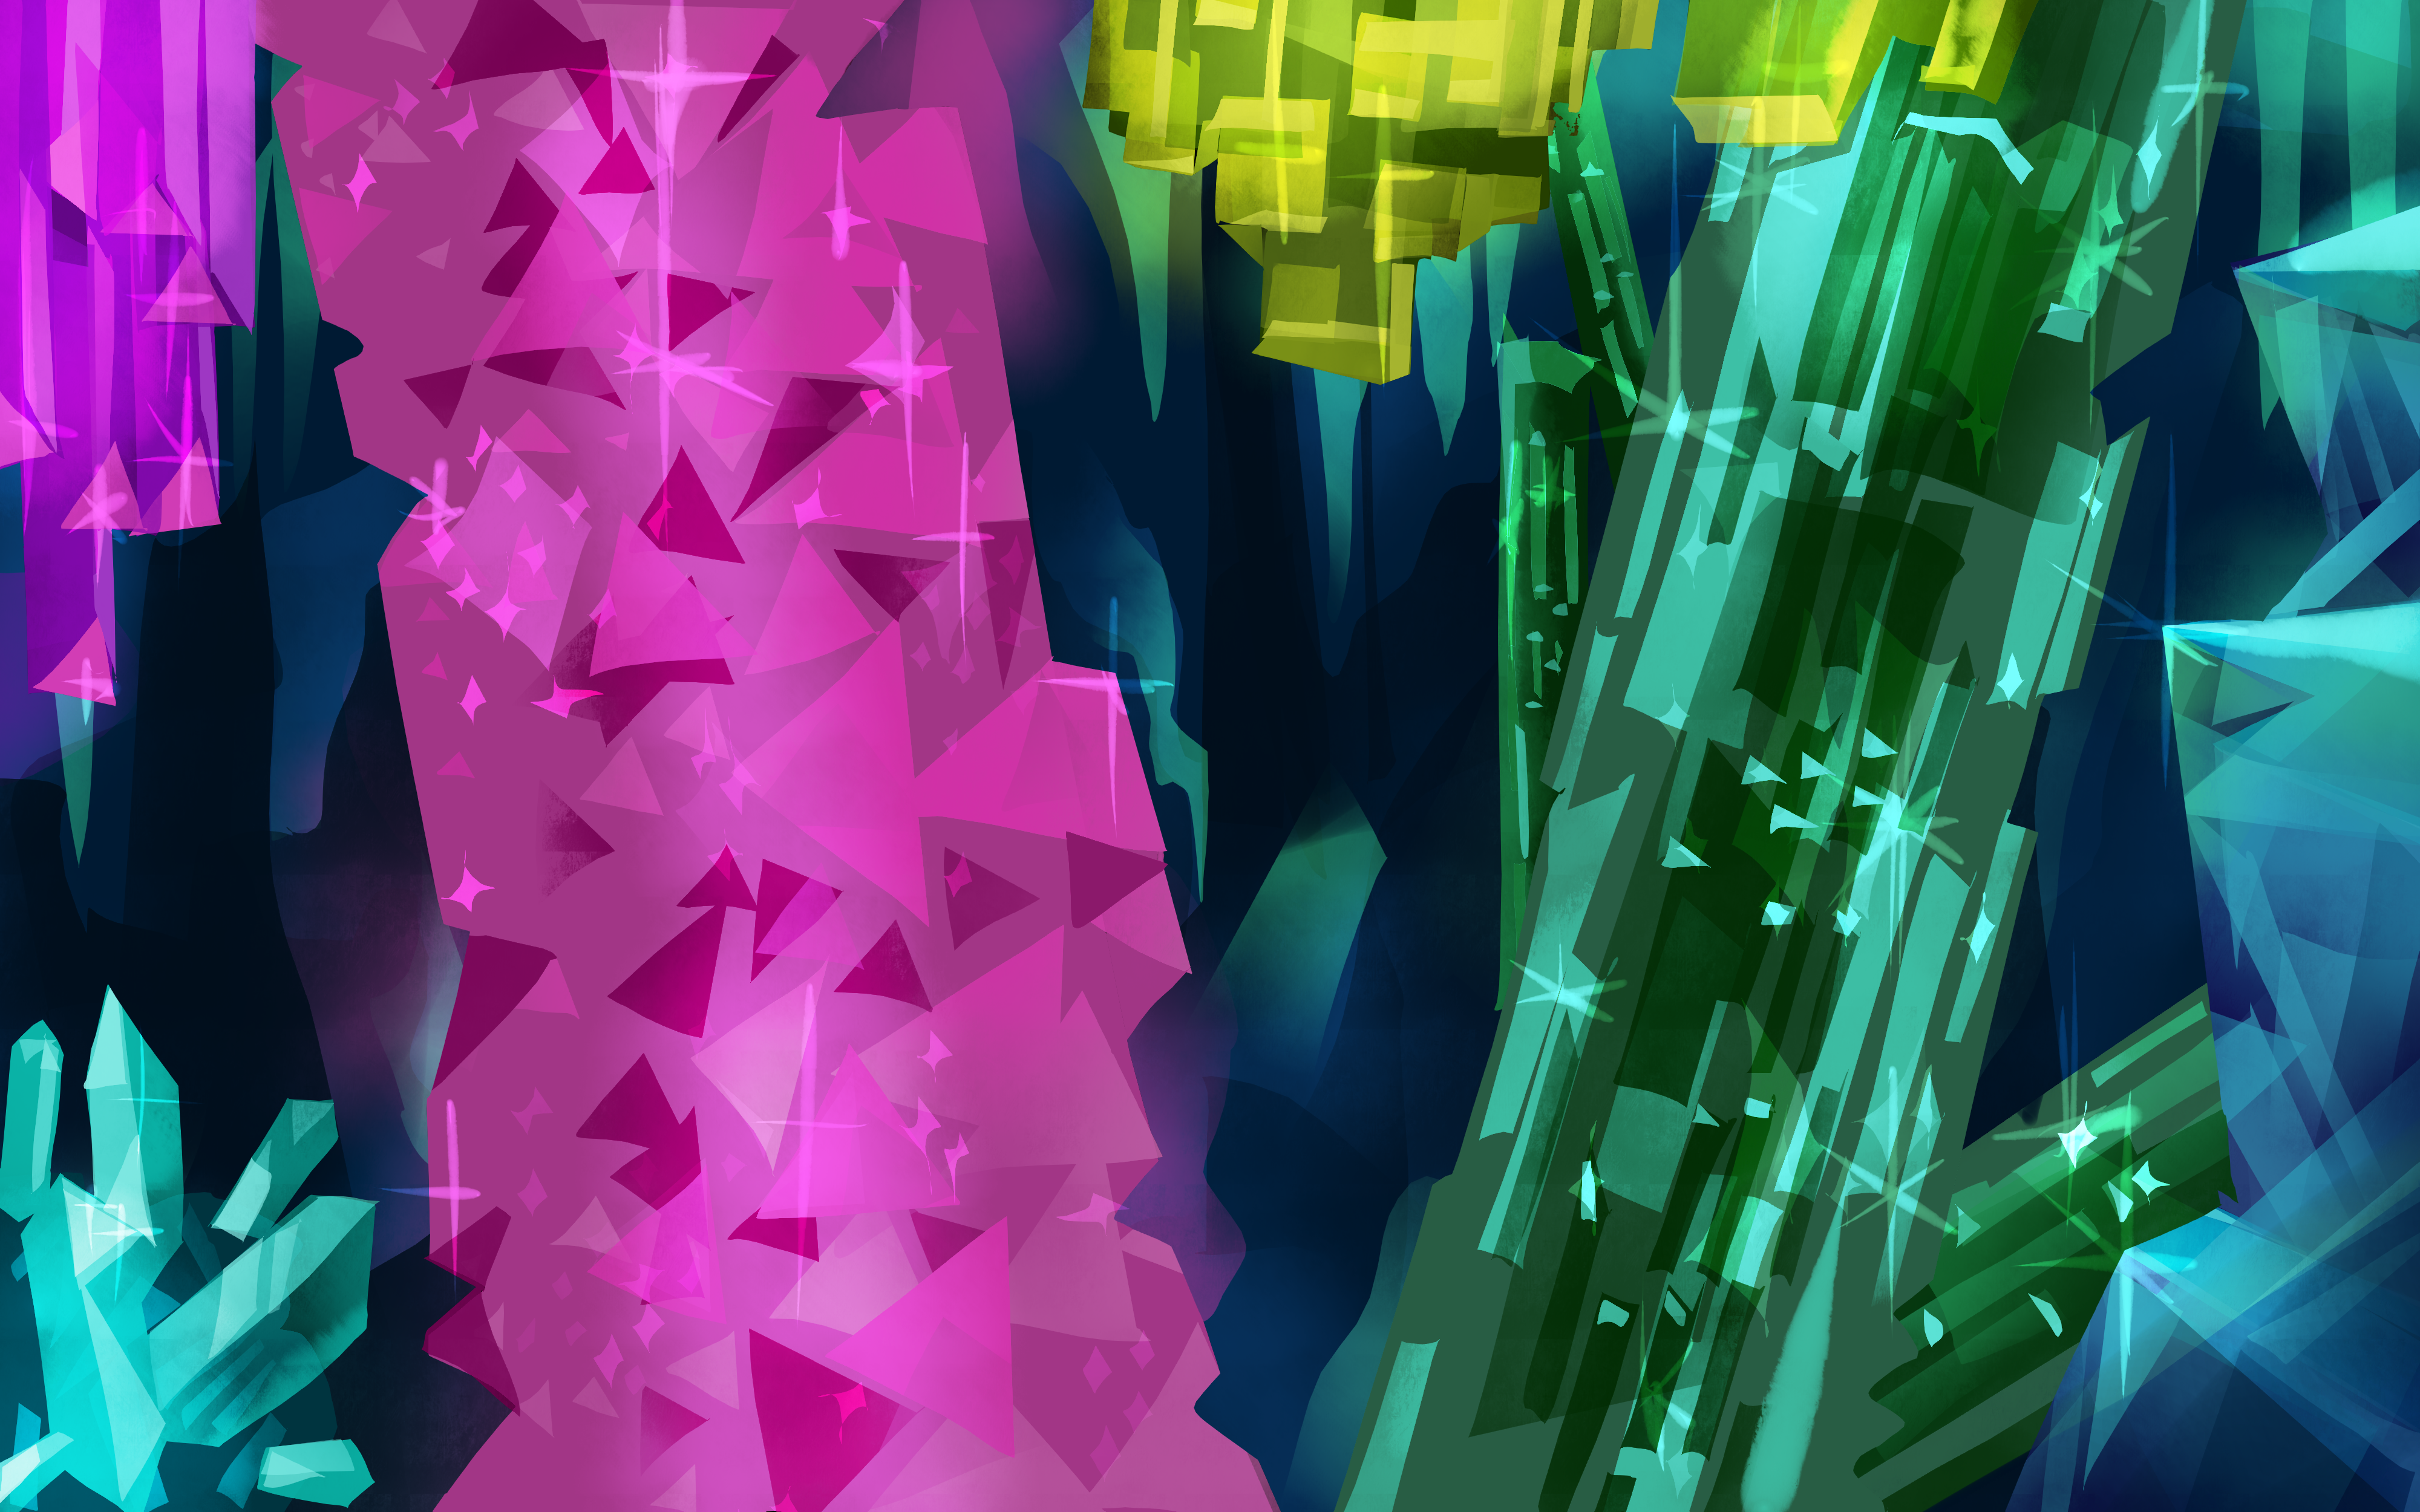 Crystal cave!